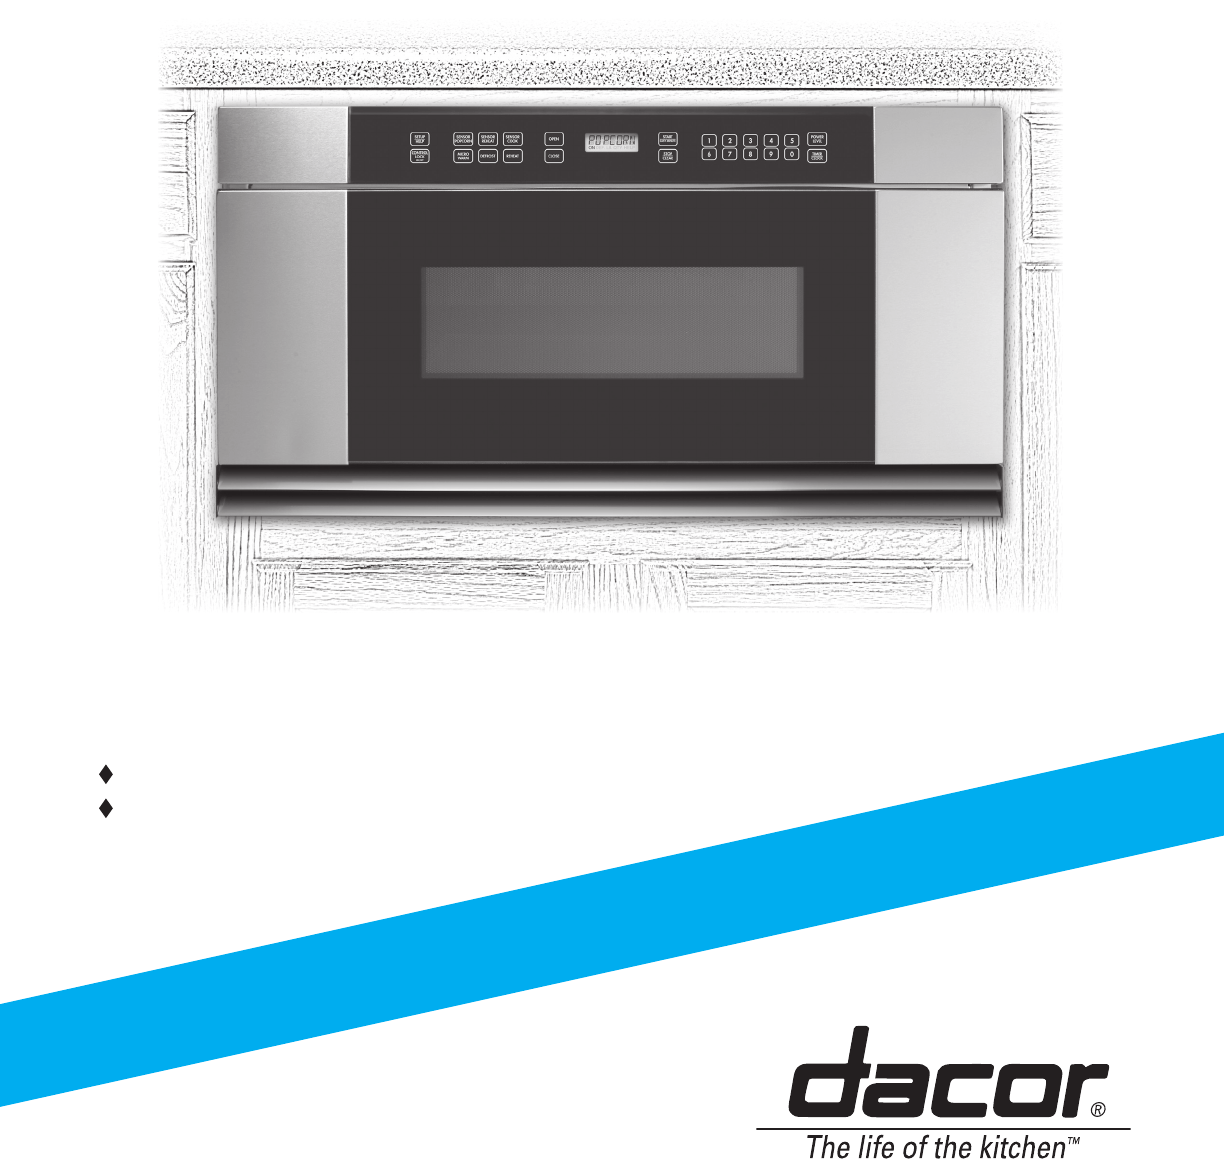 dacor microwave oven mmdv30s user guide manualsonline com